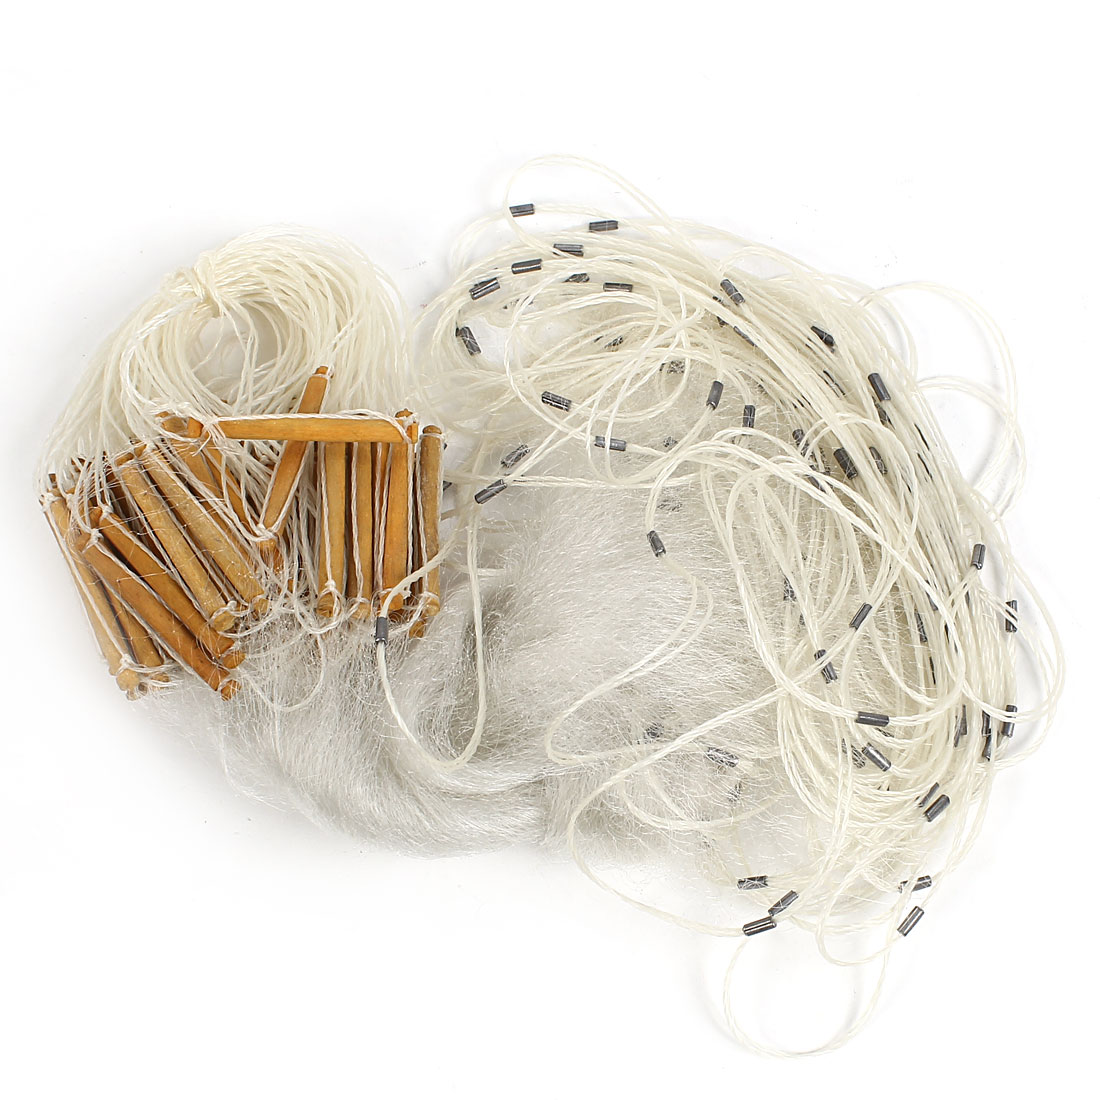 20M x 1M White Monofilament Mesh Hole Fishing Fish Gill Net 1.5cmx1.5cm